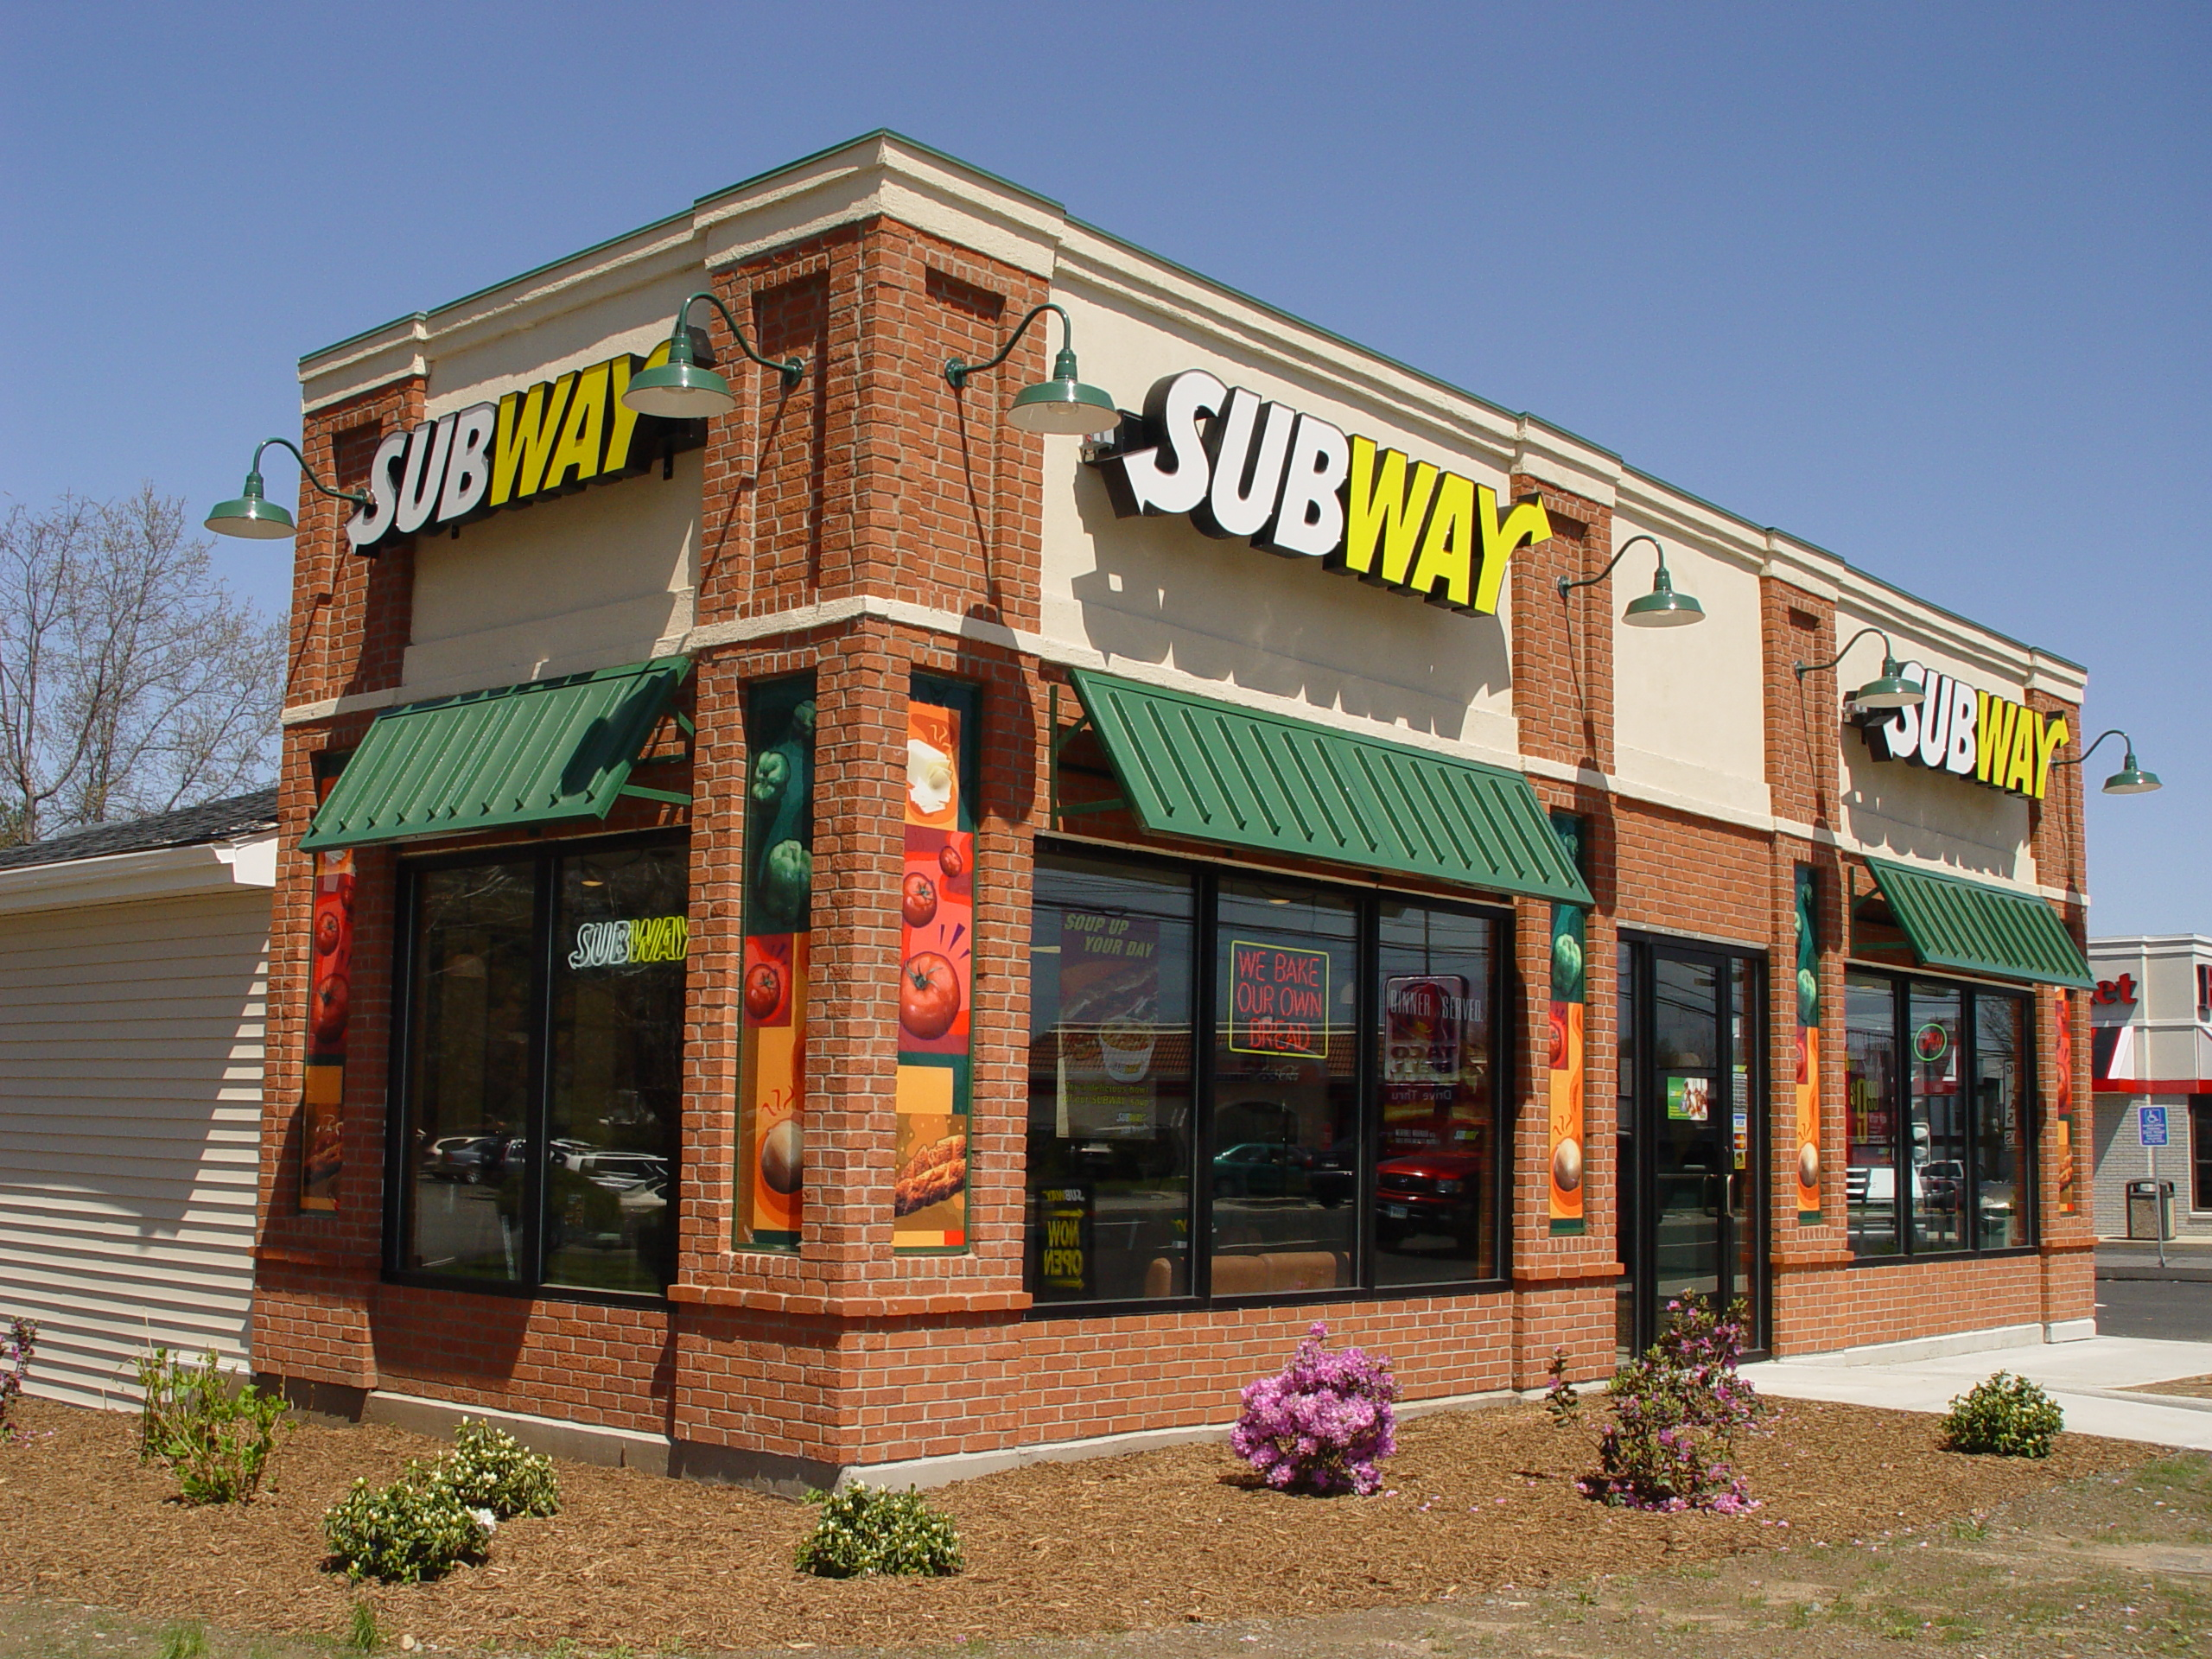 Subway, Warrenton VA